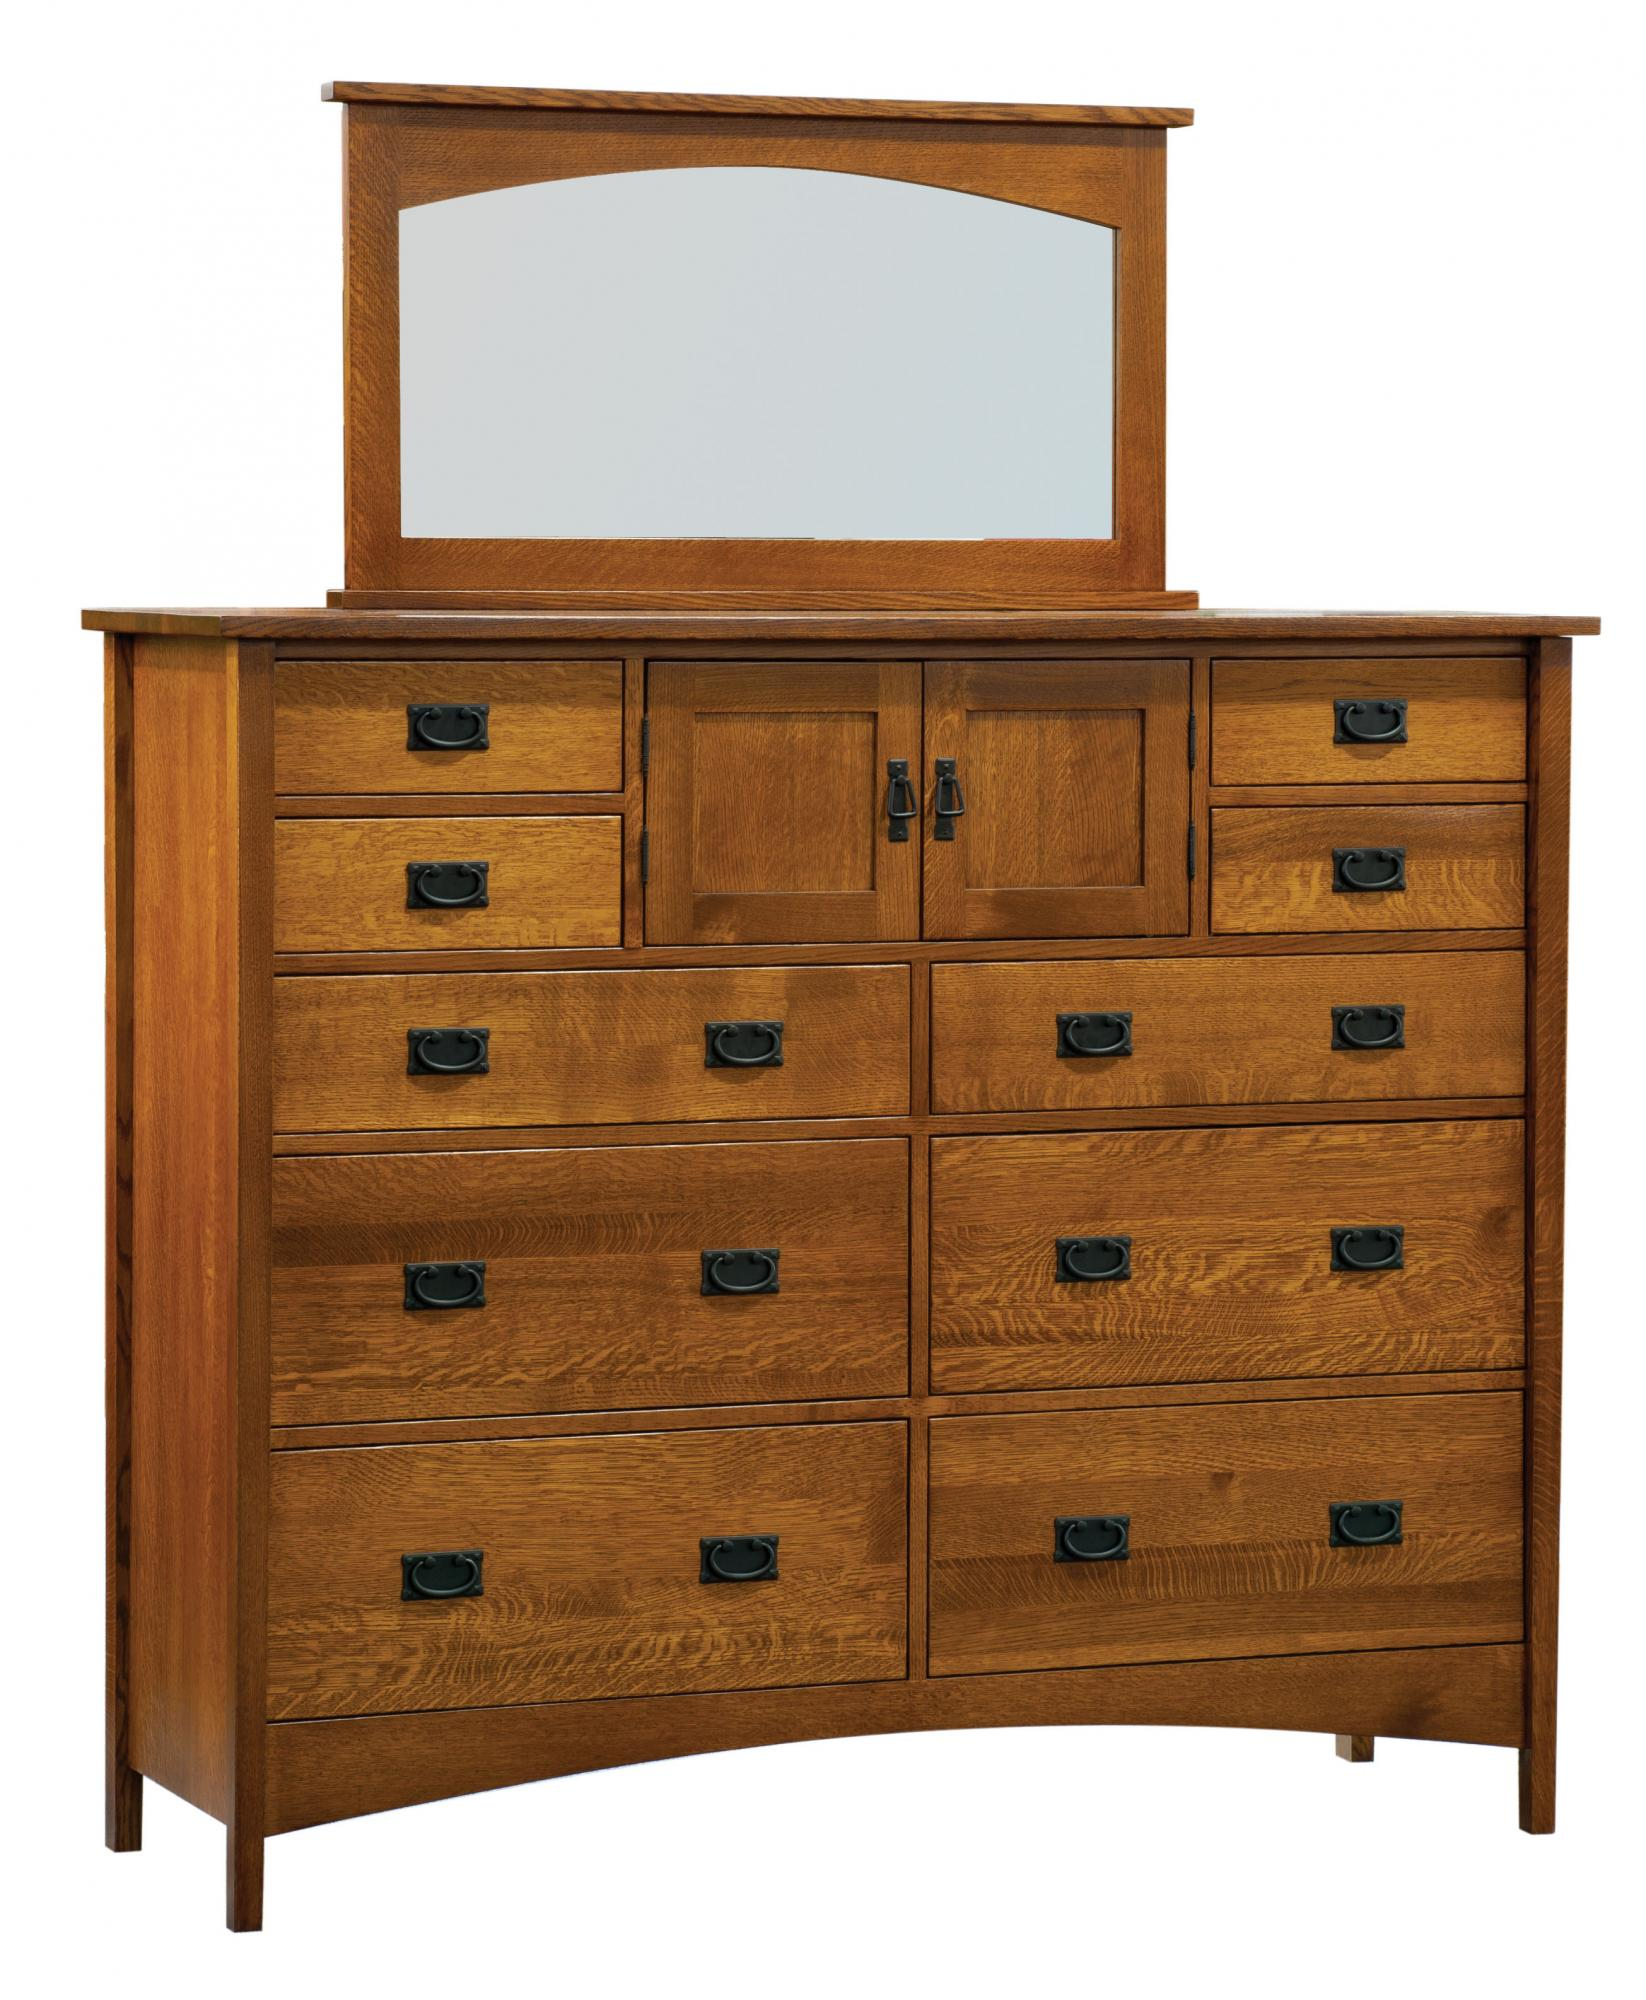 Mountain Master Dresser Amish Furniture Store Mankato Mn Mission Bed Amish Furniture Store